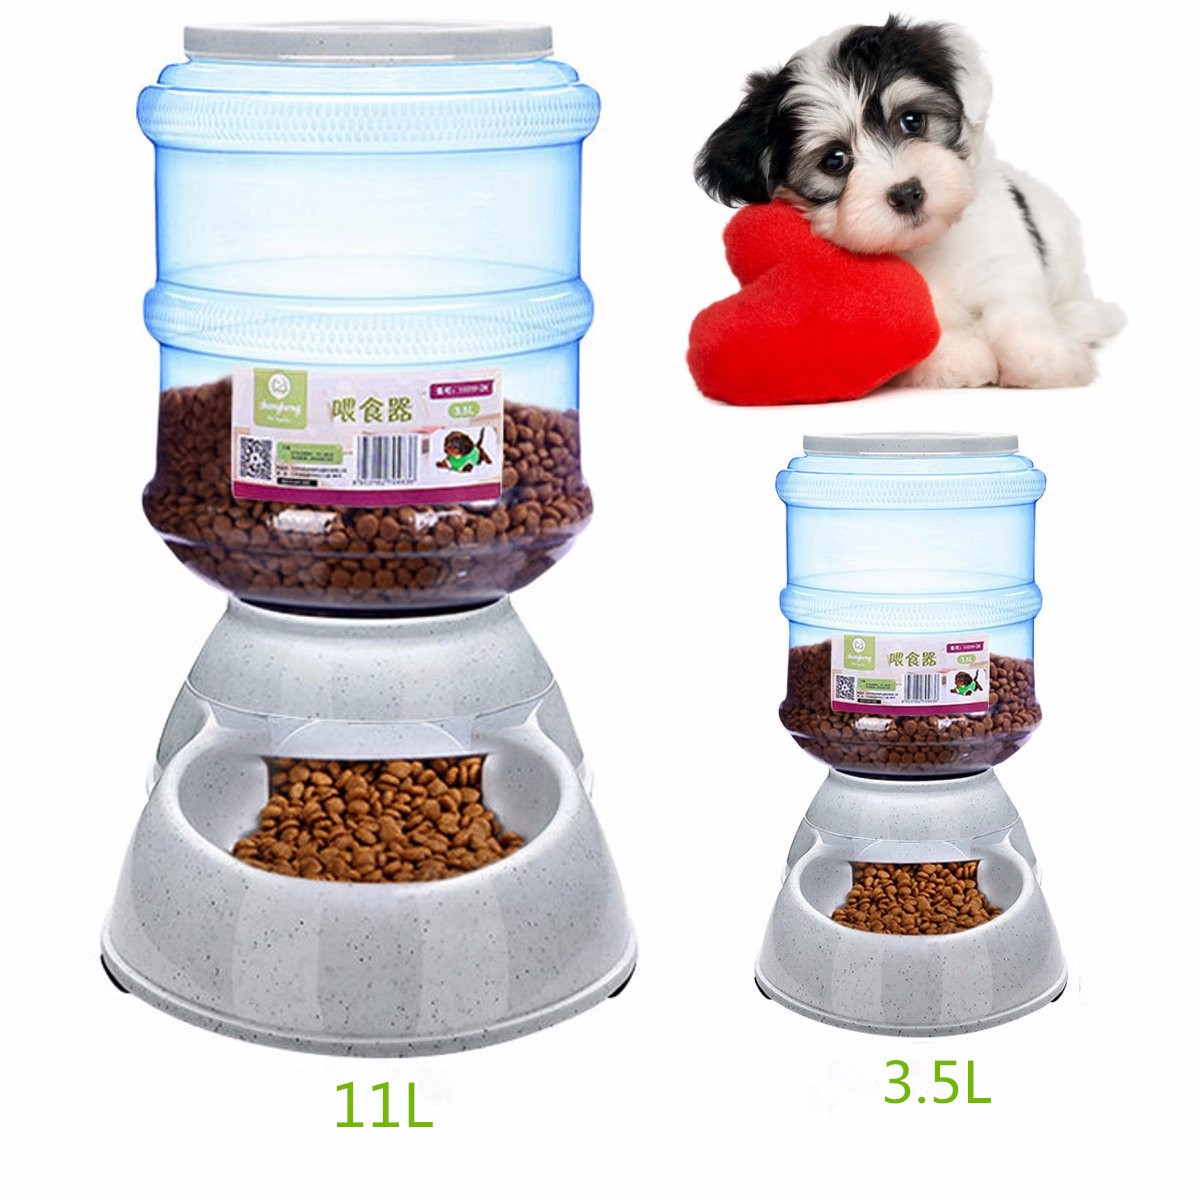 Plastic Large Pet Dog Cat Automatic Feeder 11L/3.5L Dish Food Bowl Dispenser Portion Control Pet Puppy Kitten Feeding Tools(China (Mainland))